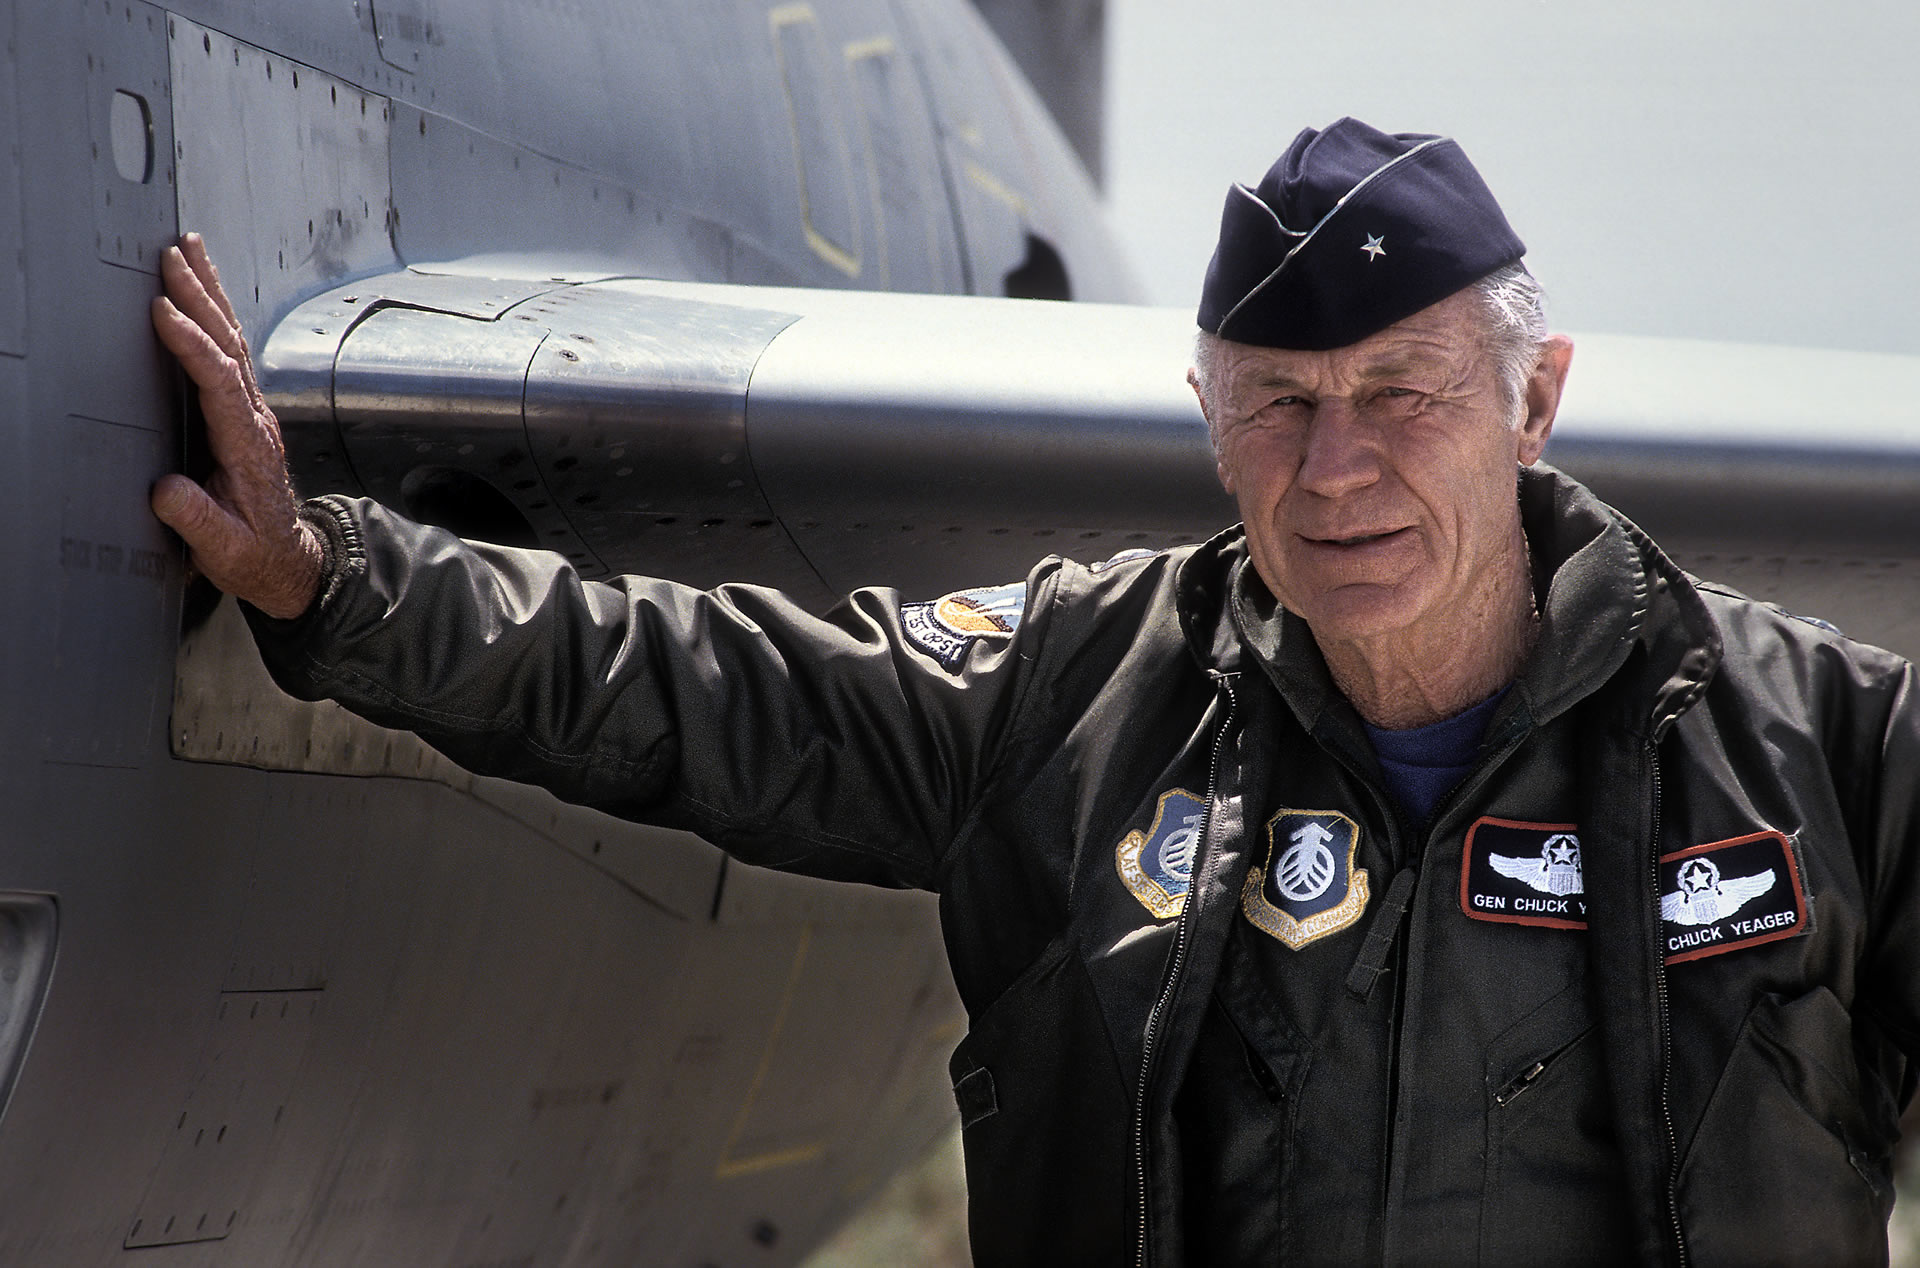 https://i0.wp.com/www.chuckyeager.com/wp-content/themes/Yeager/supersized/backgrounds/GeneralYeagerColor.jpg